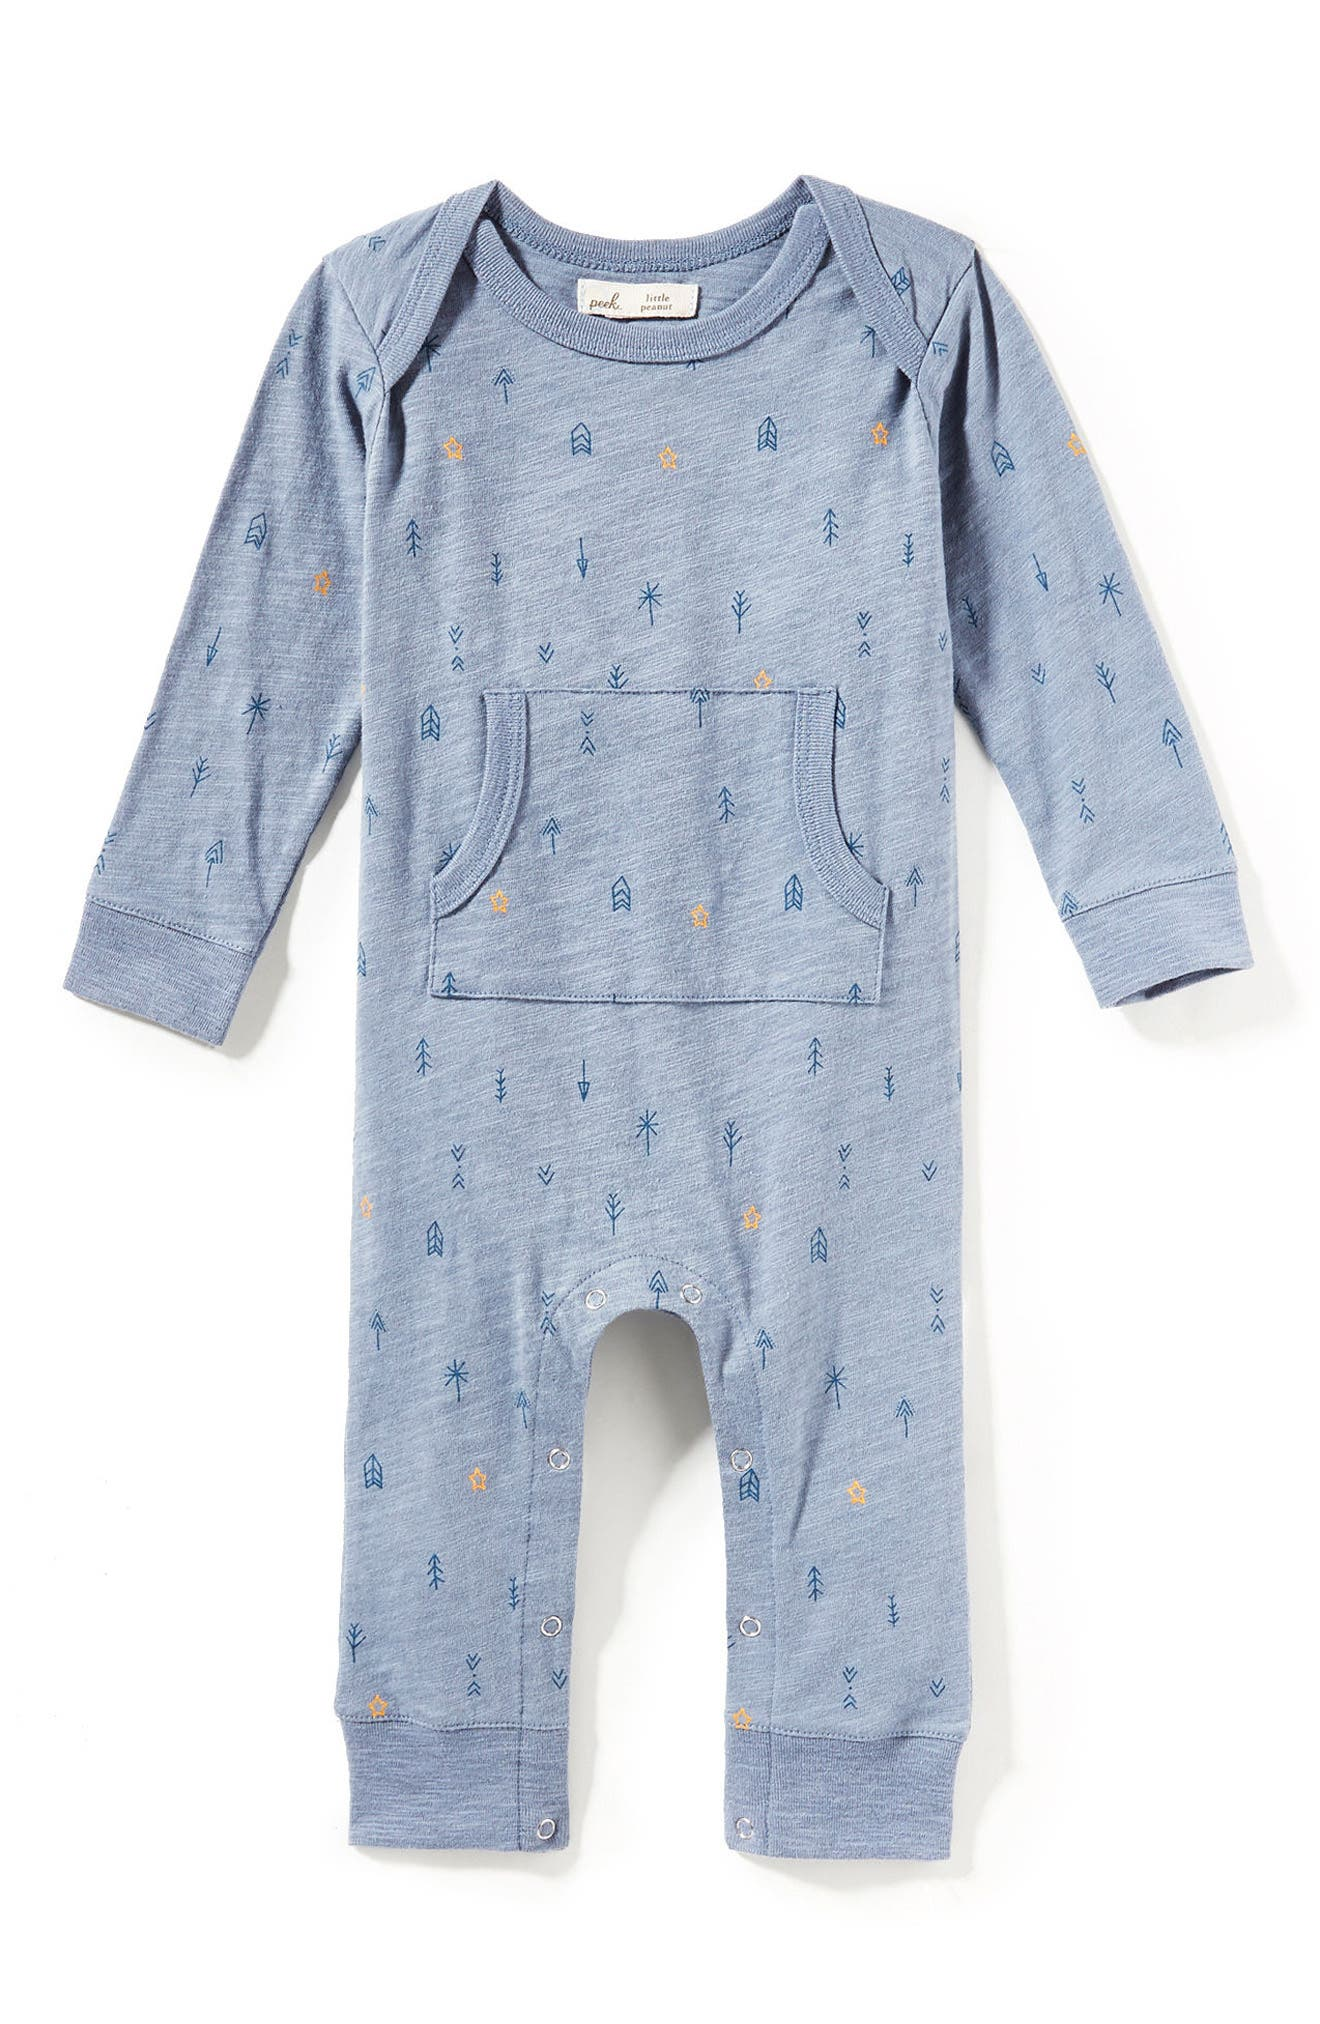 Peek Arrow Romper,                             Main thumbnail 1, color,                             Steel Blue